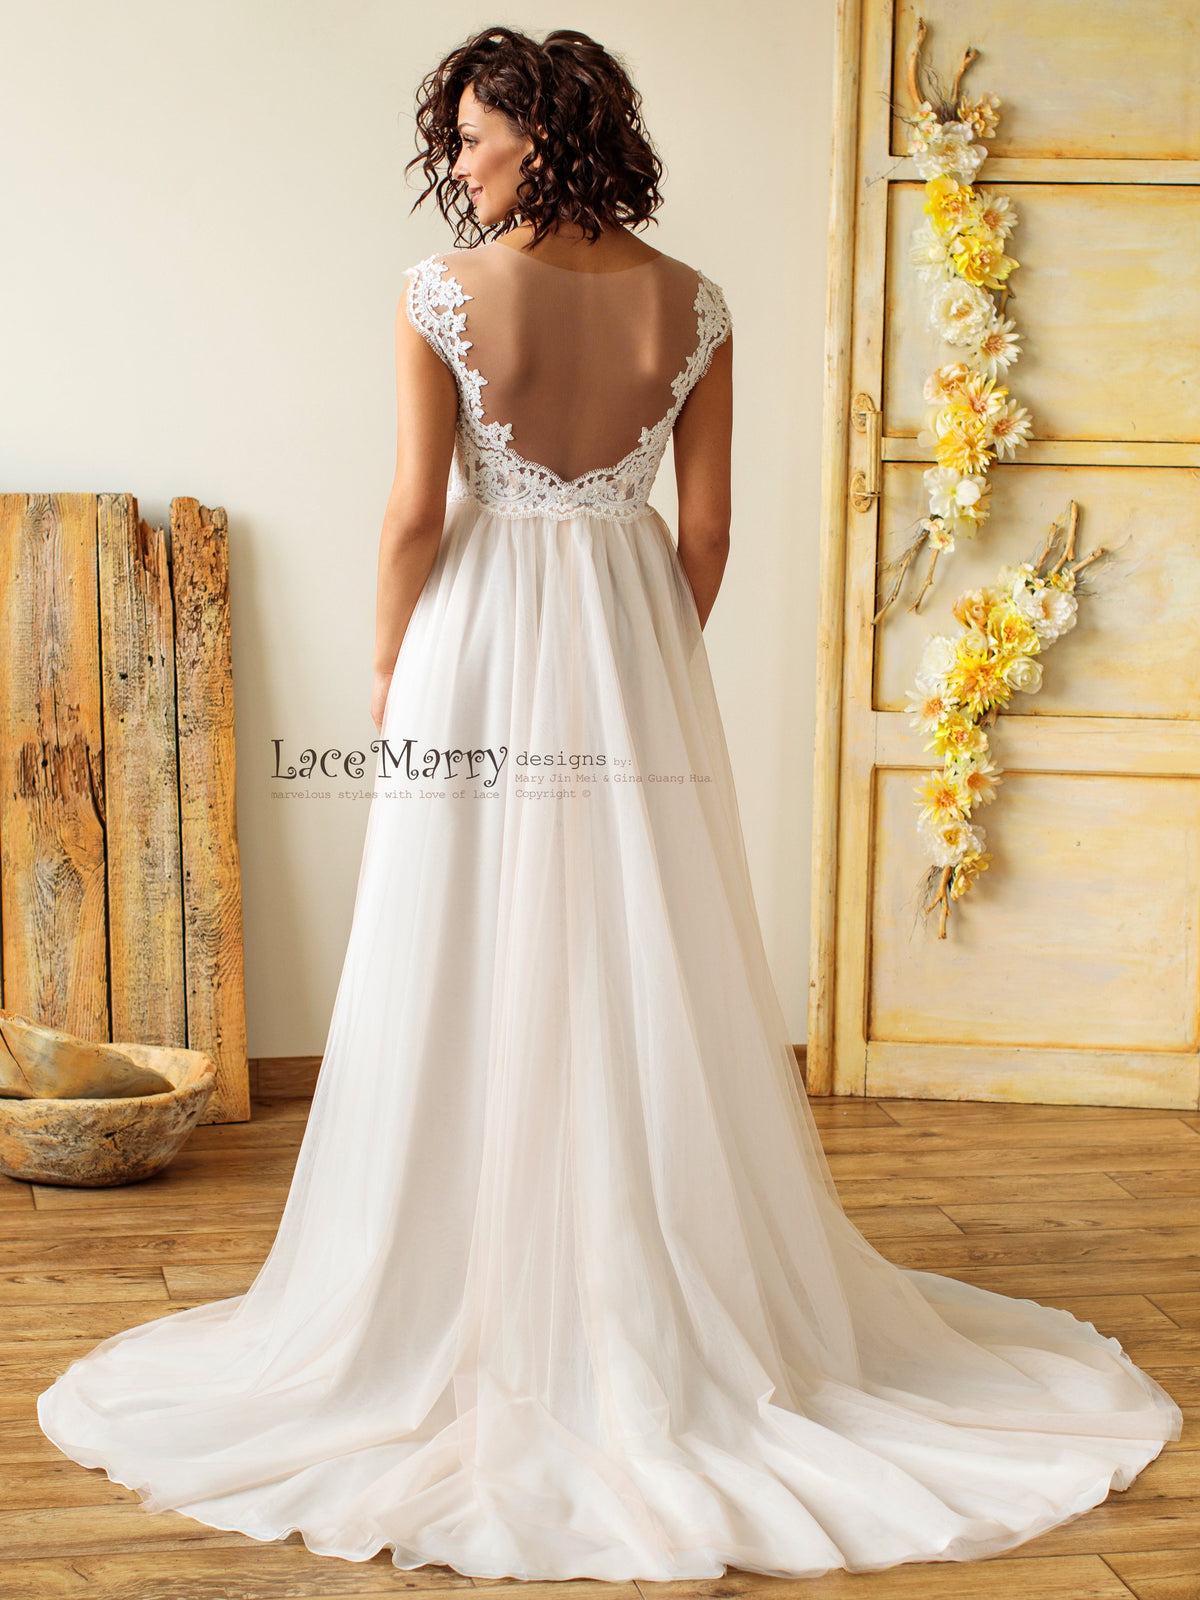 Illusion Tulle Back Bohemian Style Wedding Dress